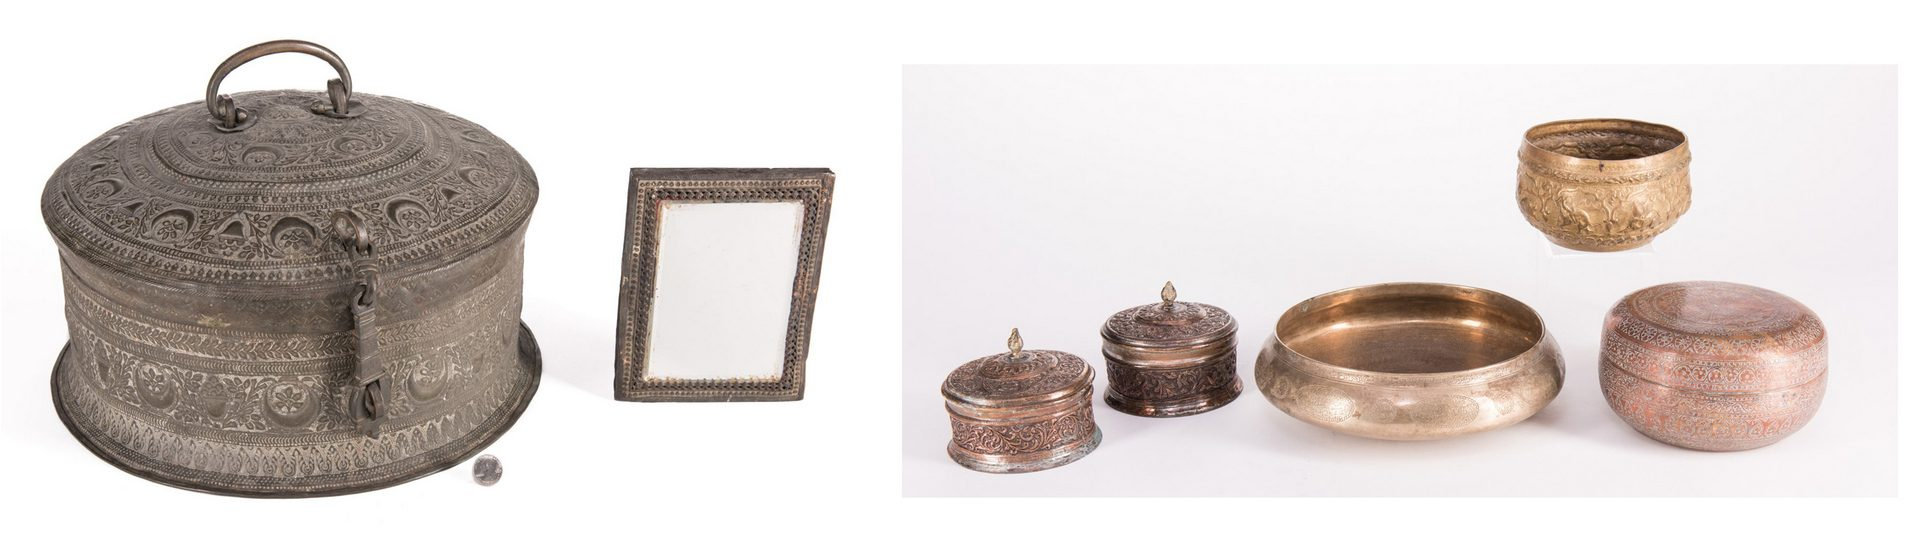 Lot 239: Grouping of Indian and Near Eastern items, 13 item